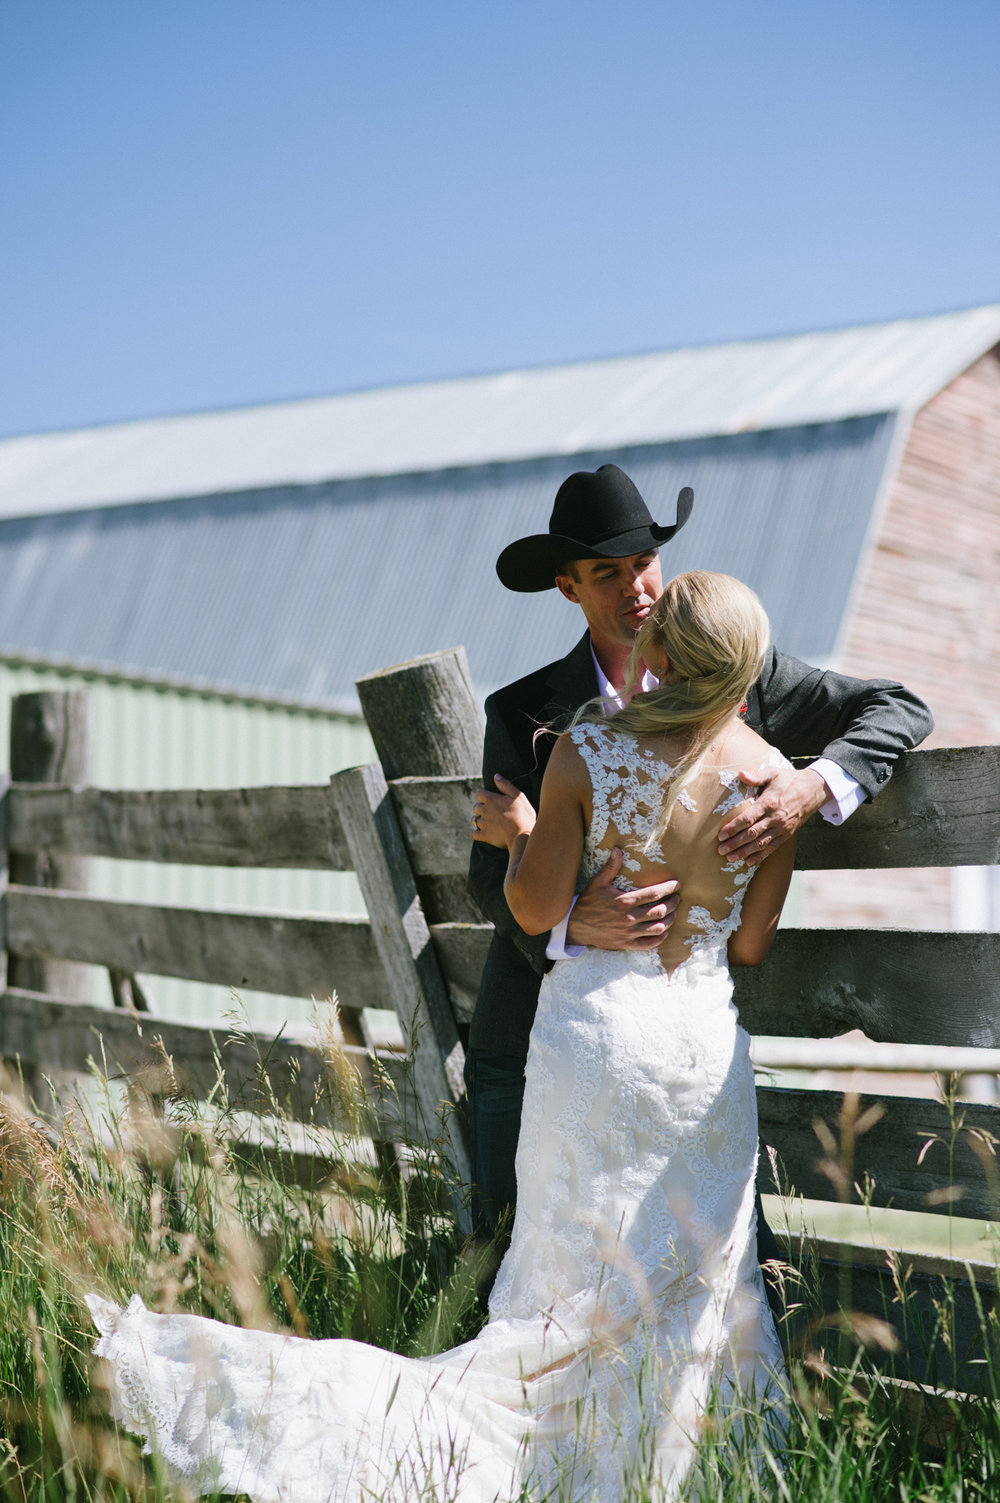 Erica Lind + Jeff Heim Wedding_Rustic Wedding_Montana Wedding_Kelsey Lane Photography-3938-2.jpg